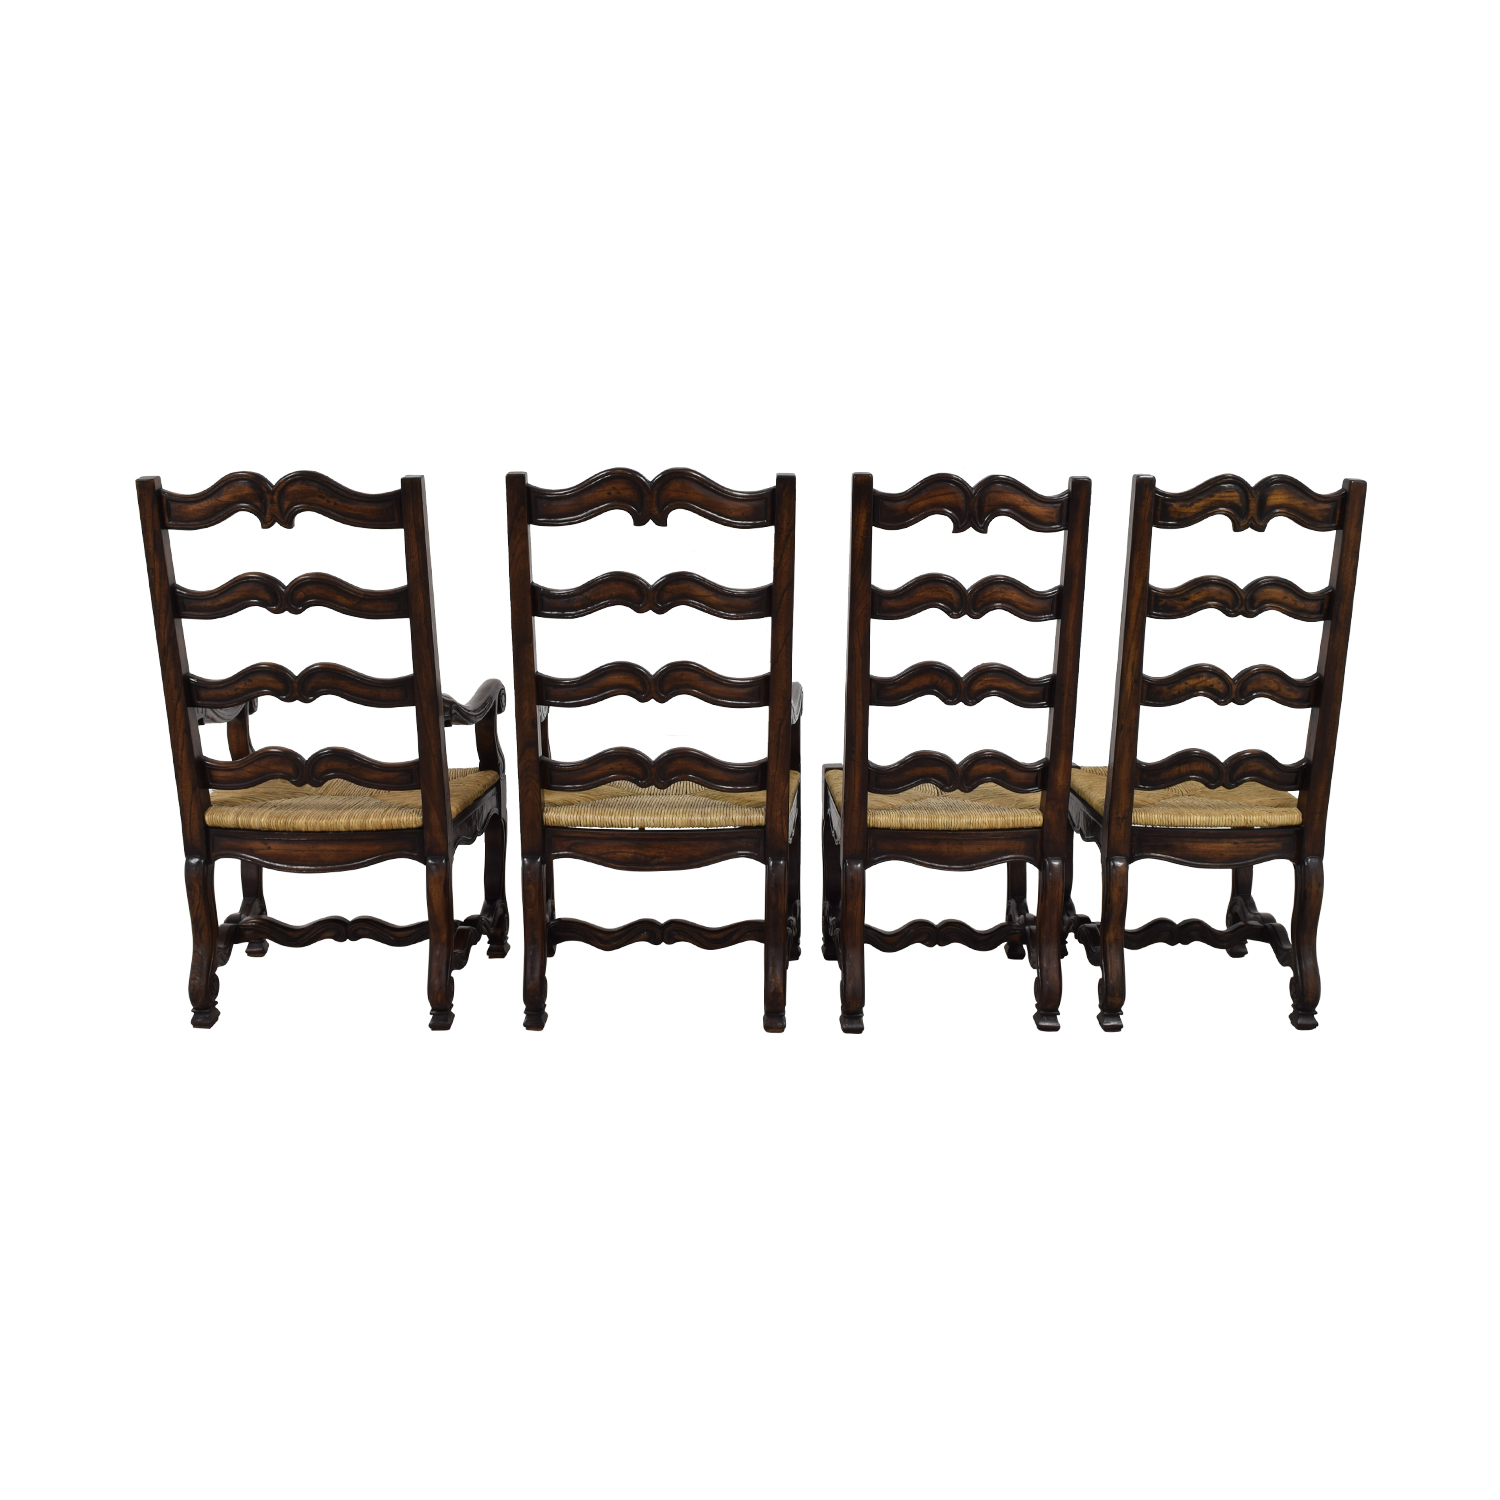 Ambella Home Ambella Home Wood and Straw Dining Chairs price